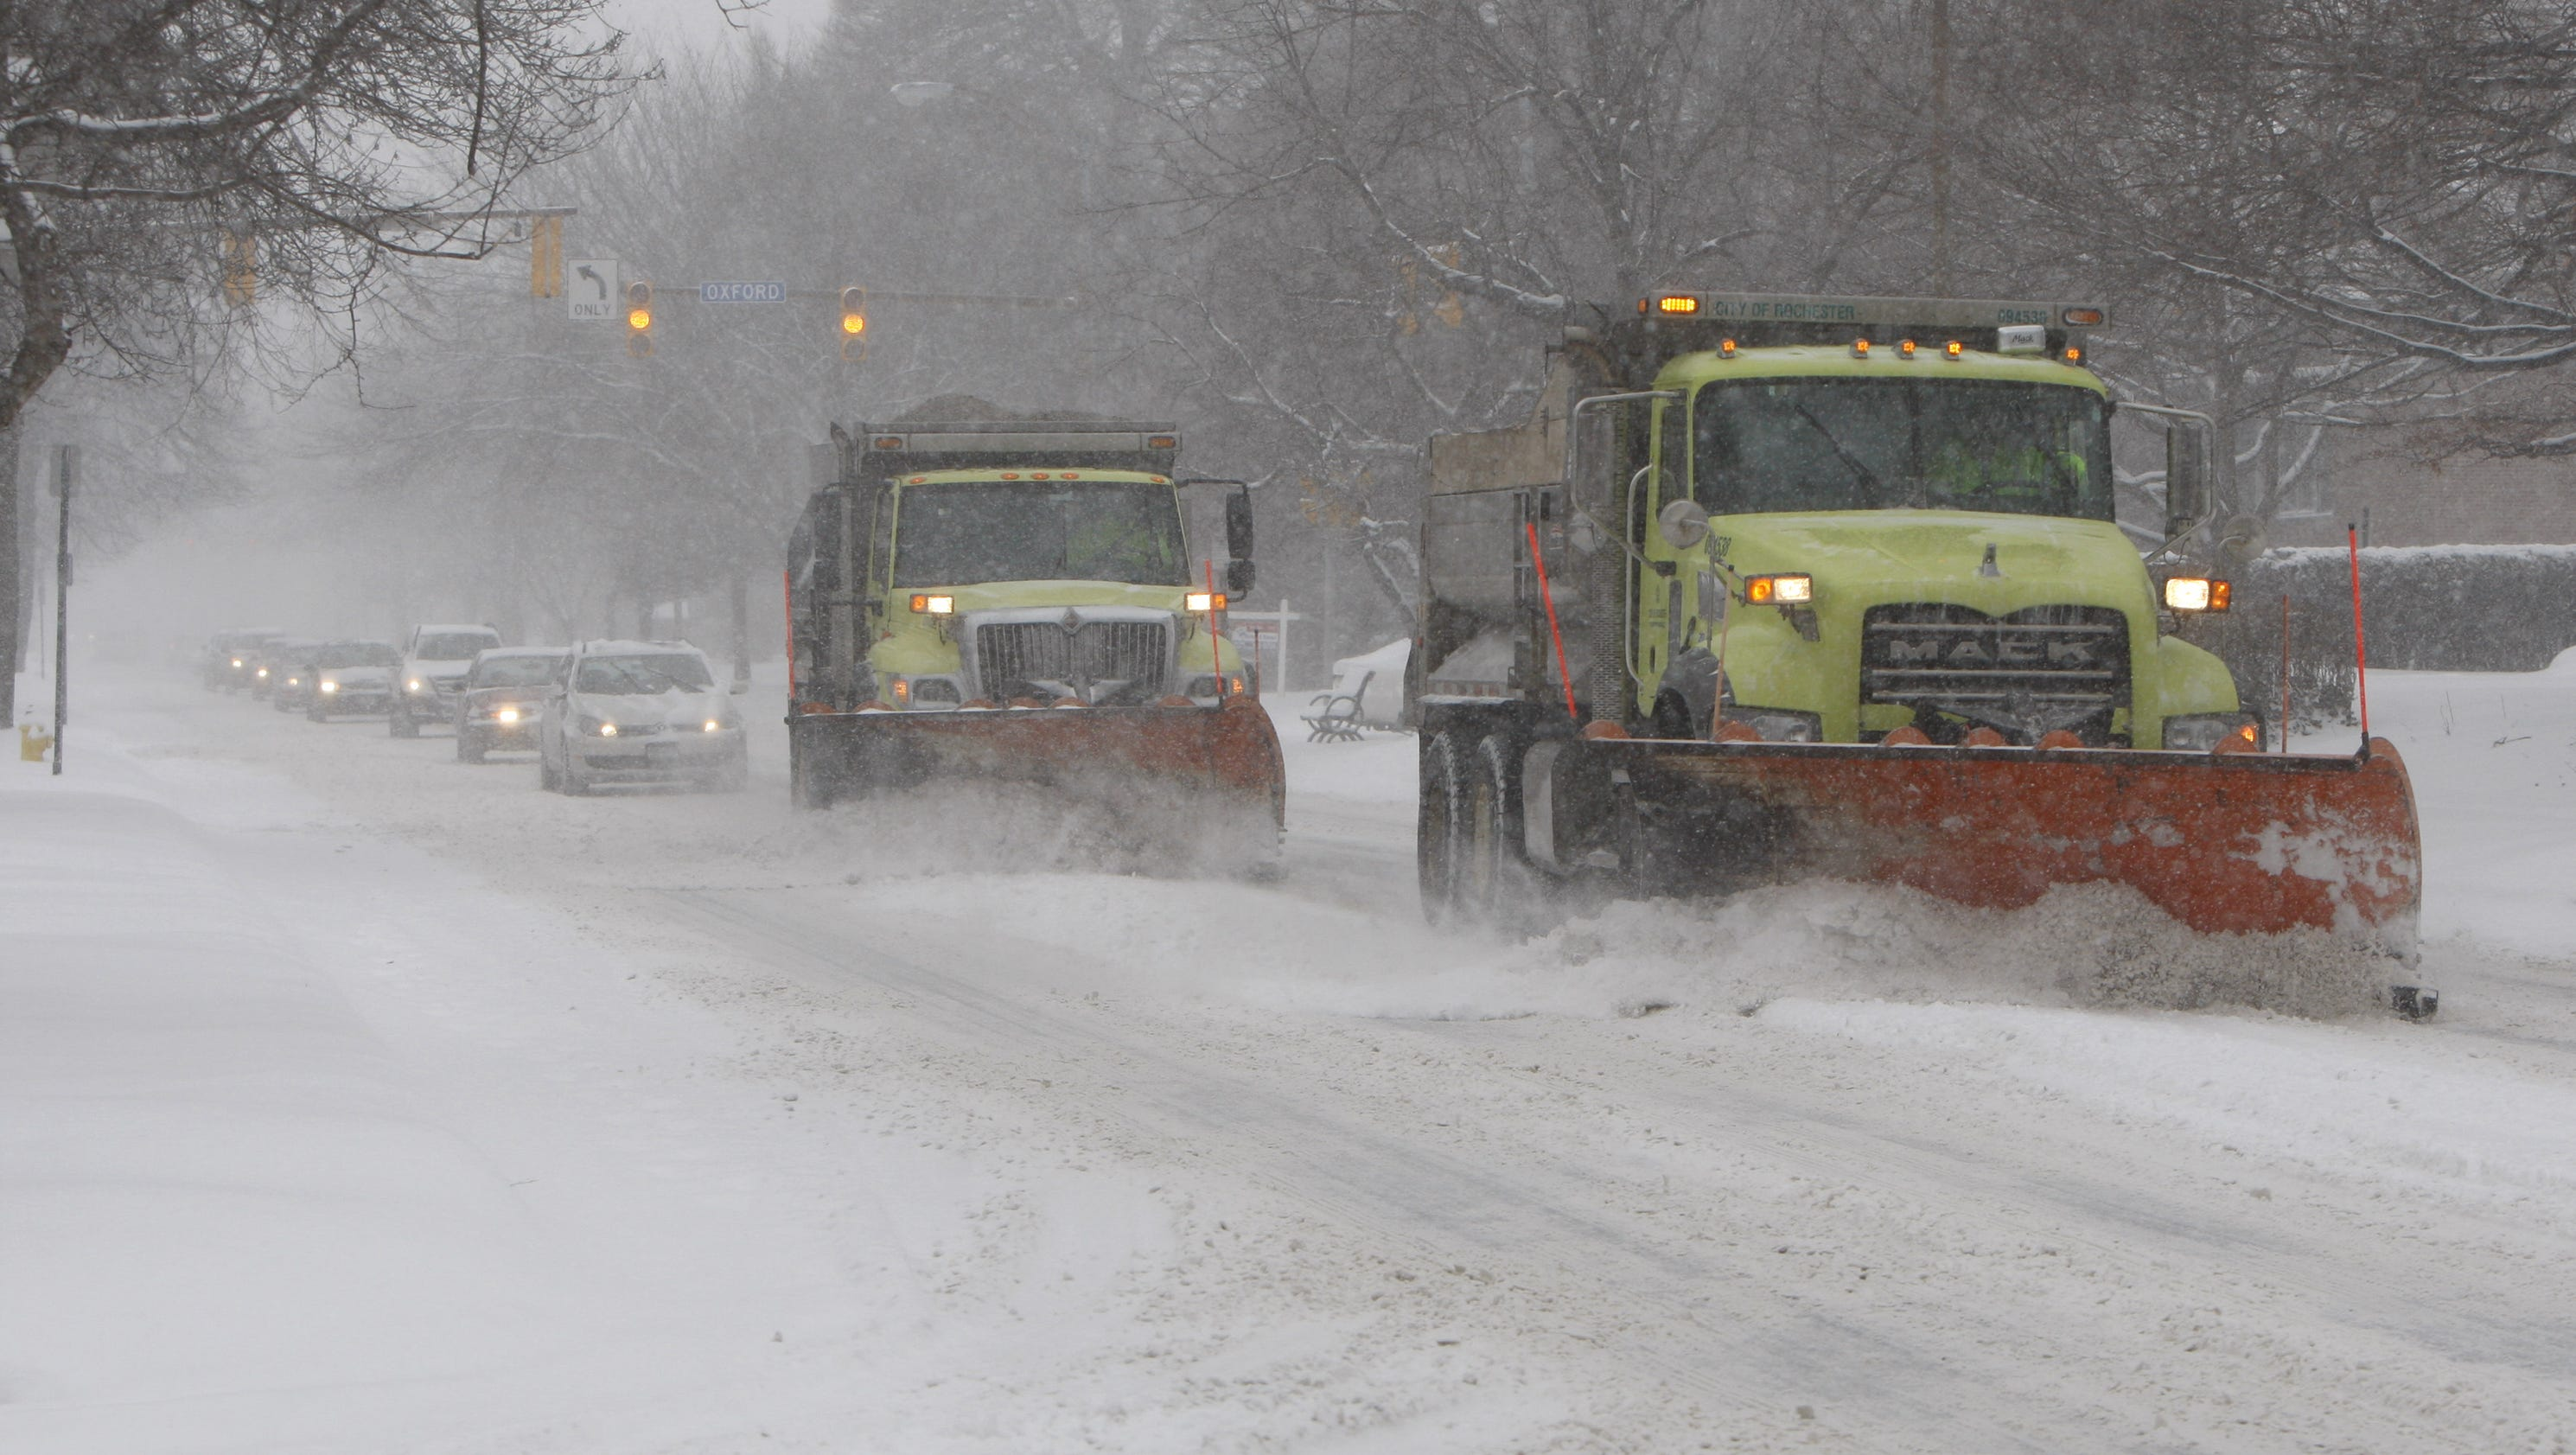 City unveils snow coping apps